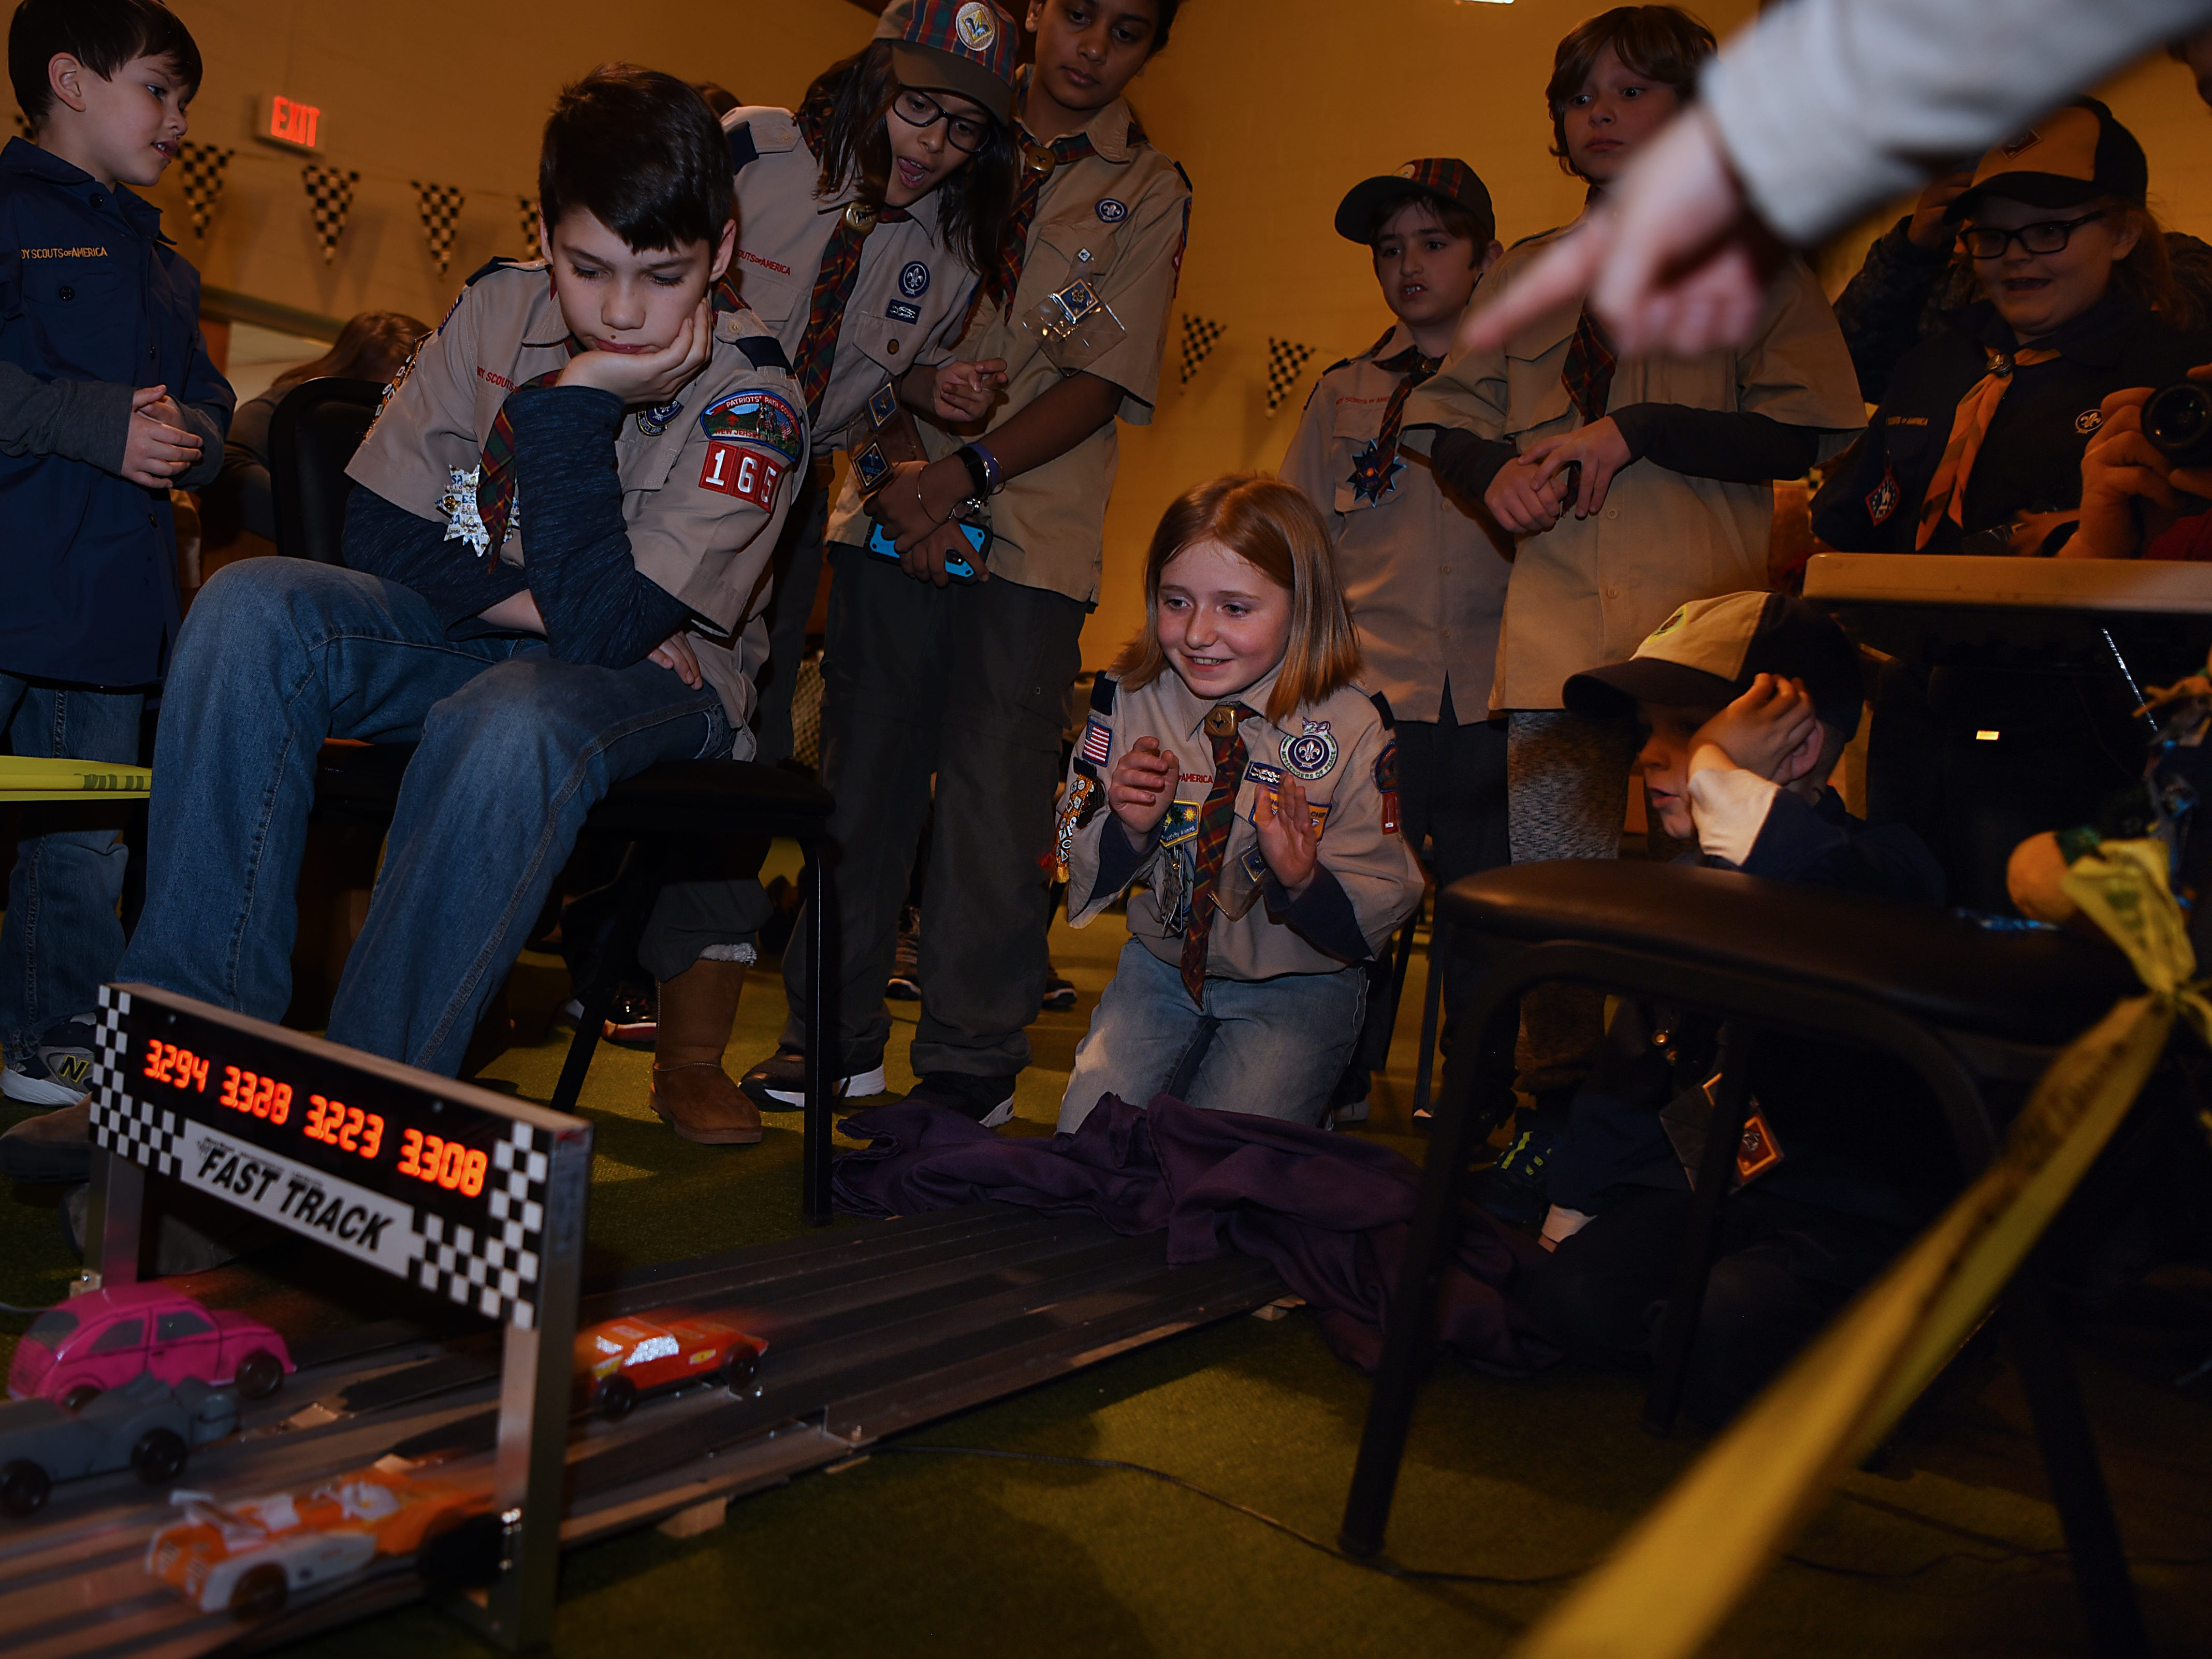 The Morris County Pinewood Derby at Holy Trinity Lutheran Church in Rockaway on Friday January 18, 2019. (Kneeling center) Madison Sipple, 10 years old with Cub Scout pack 165 Arrow of Light den, watches as the cars race to the finish line.